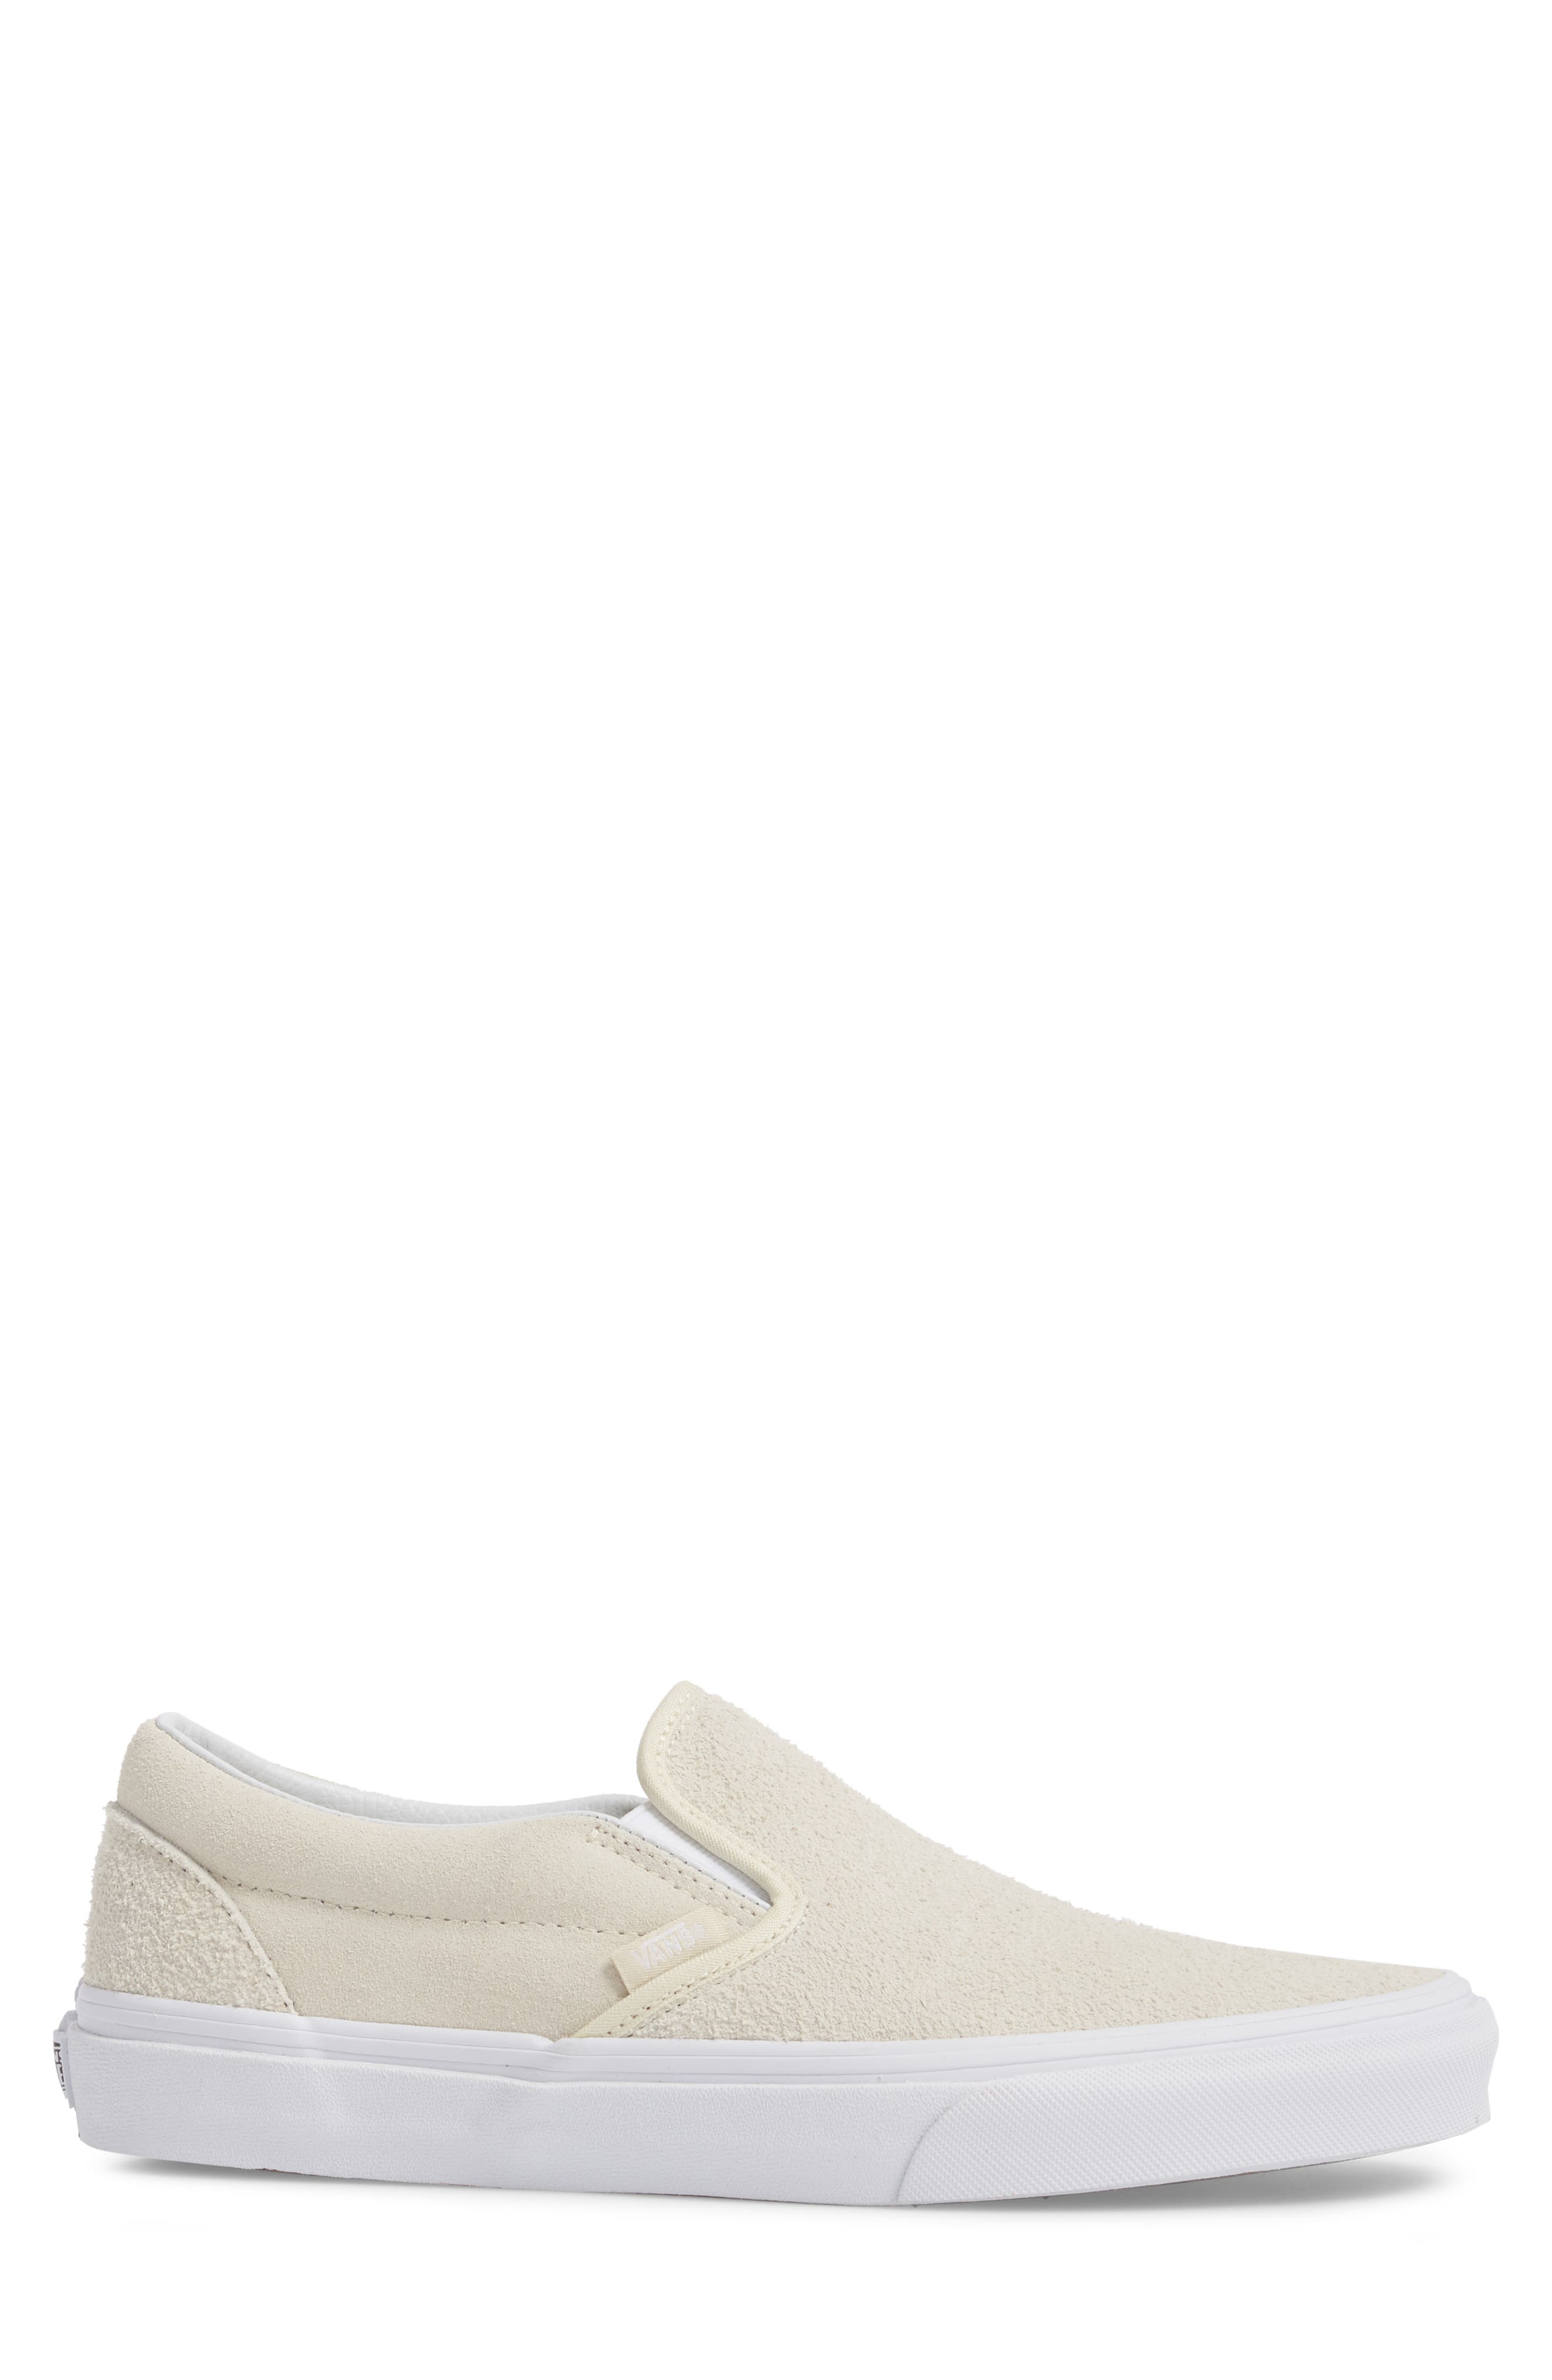 Classic Hairy Suede Slip-On Sneaker,                             Alternate thumbnail 3, color,                             Turtledove Leather